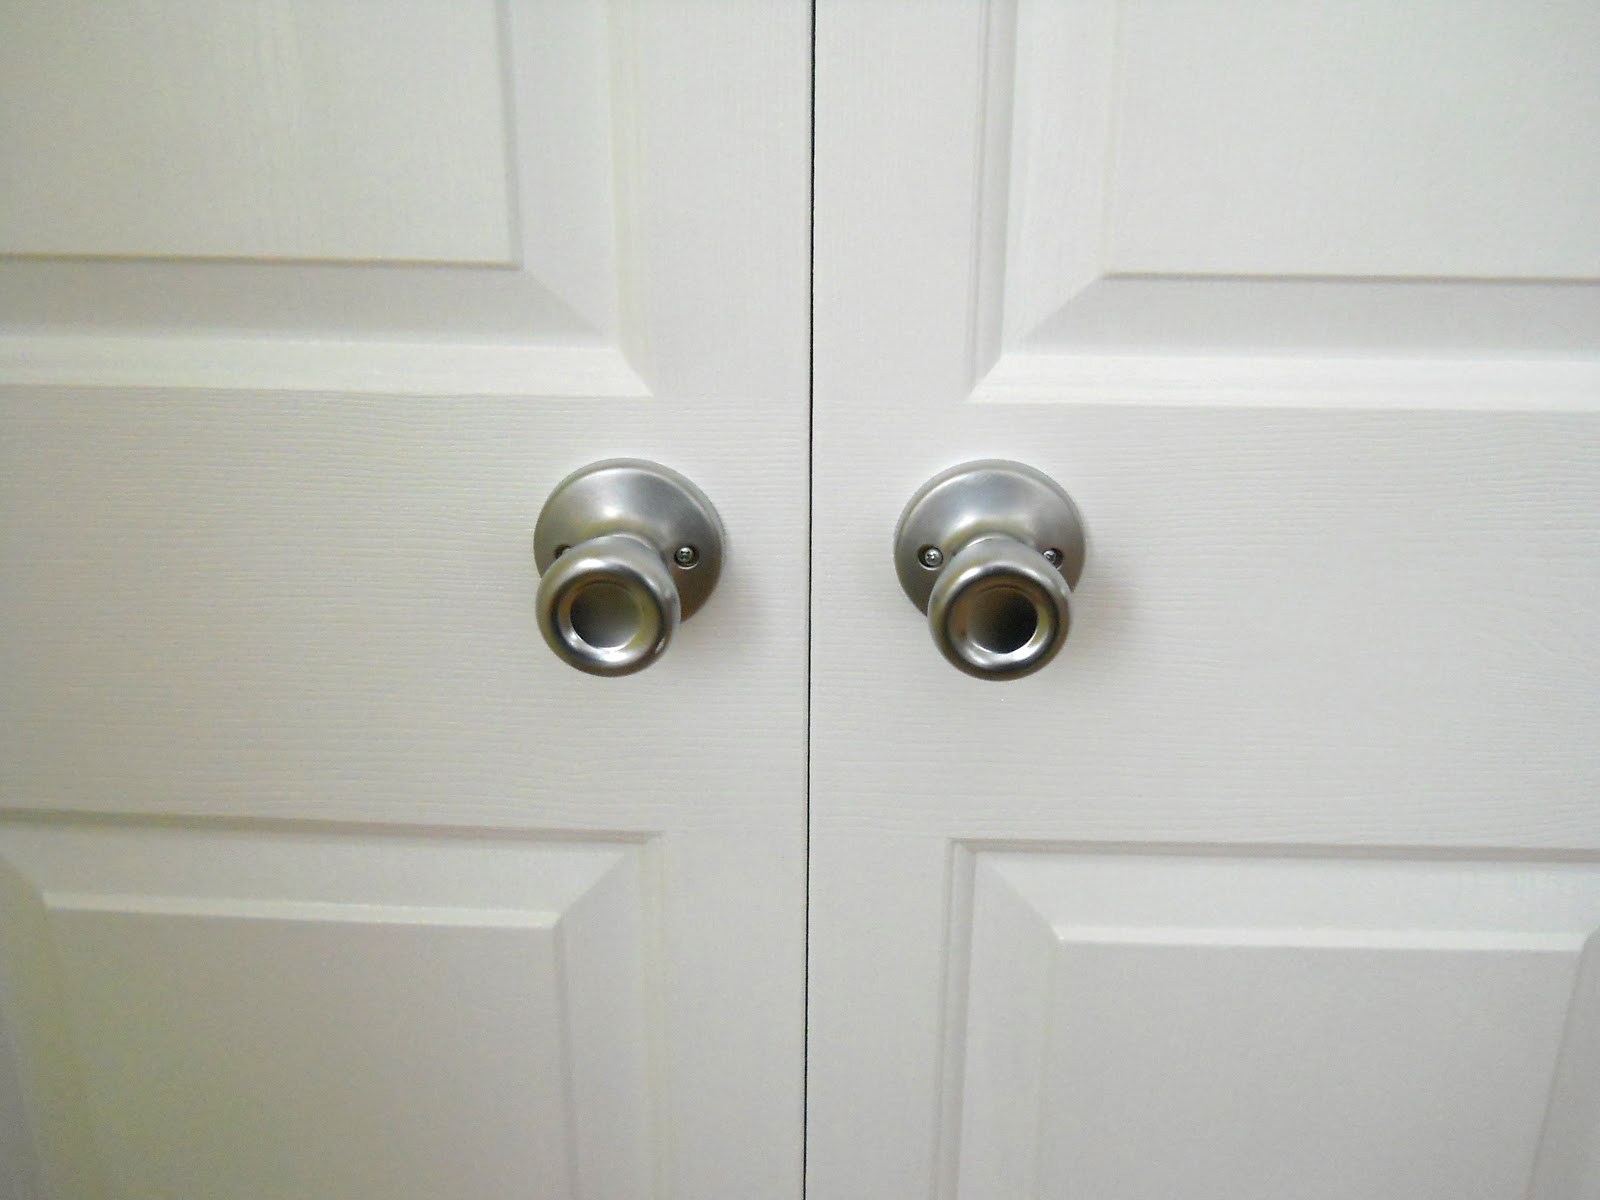 How to install bifold closet doors - I Also Installed Dummy Knobs On Each Door And Ball Catches At The Top To Hold The Doors Shut